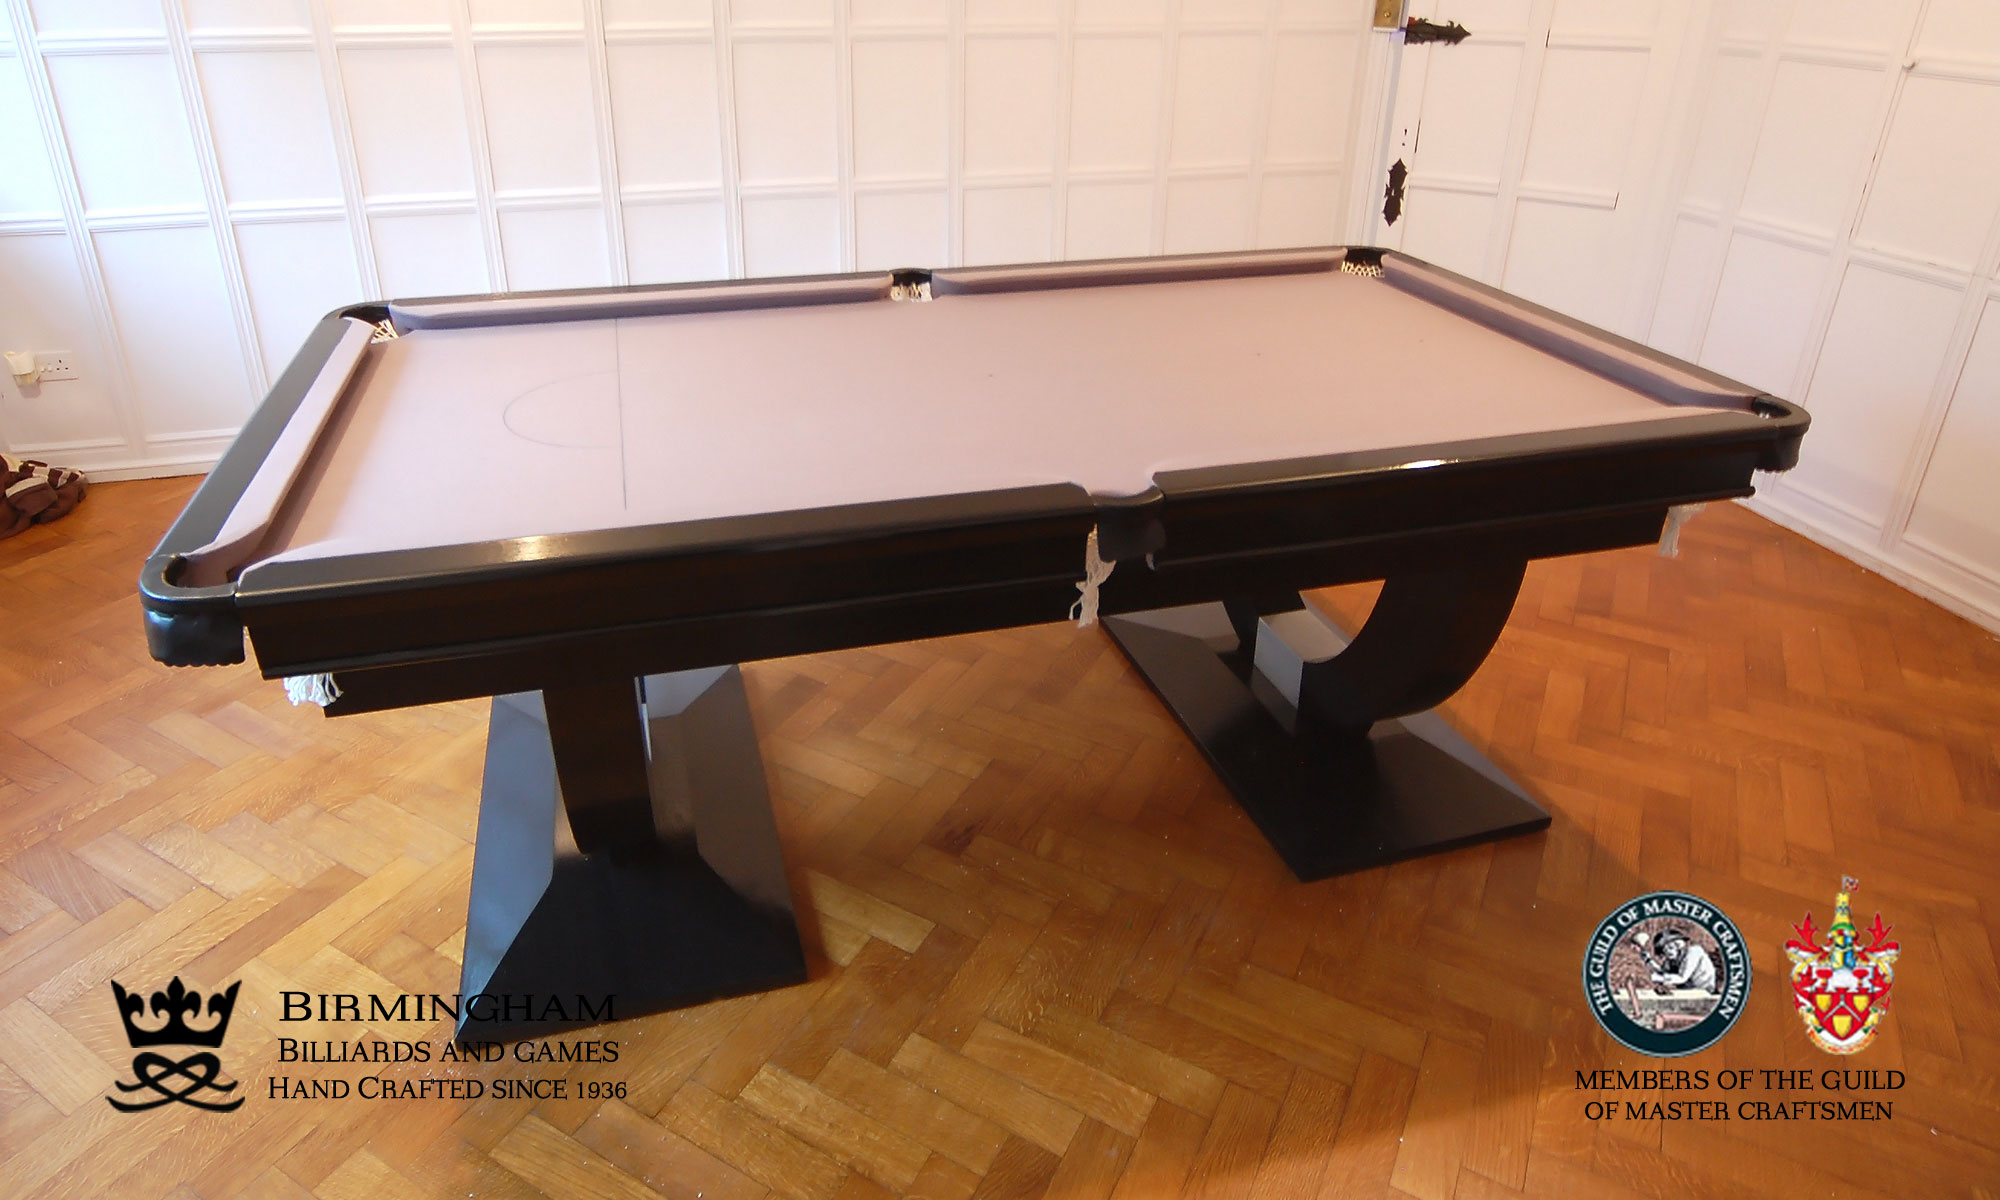 The Mayfair-Art Deco, Handmade pool table, black gloss finish, silver baize